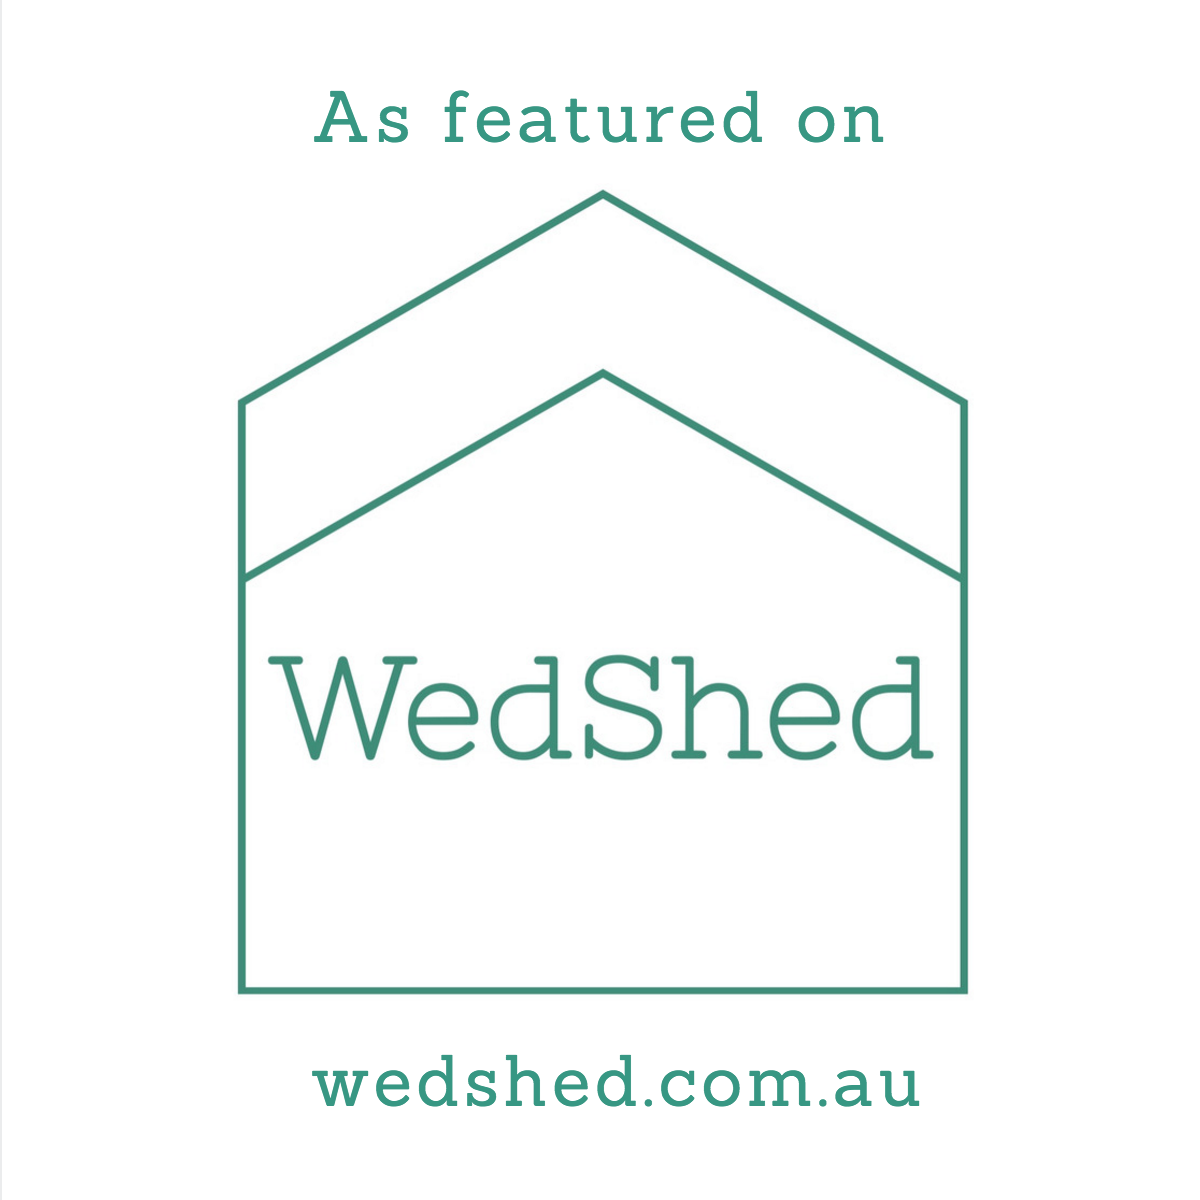 Featured On Wedshed